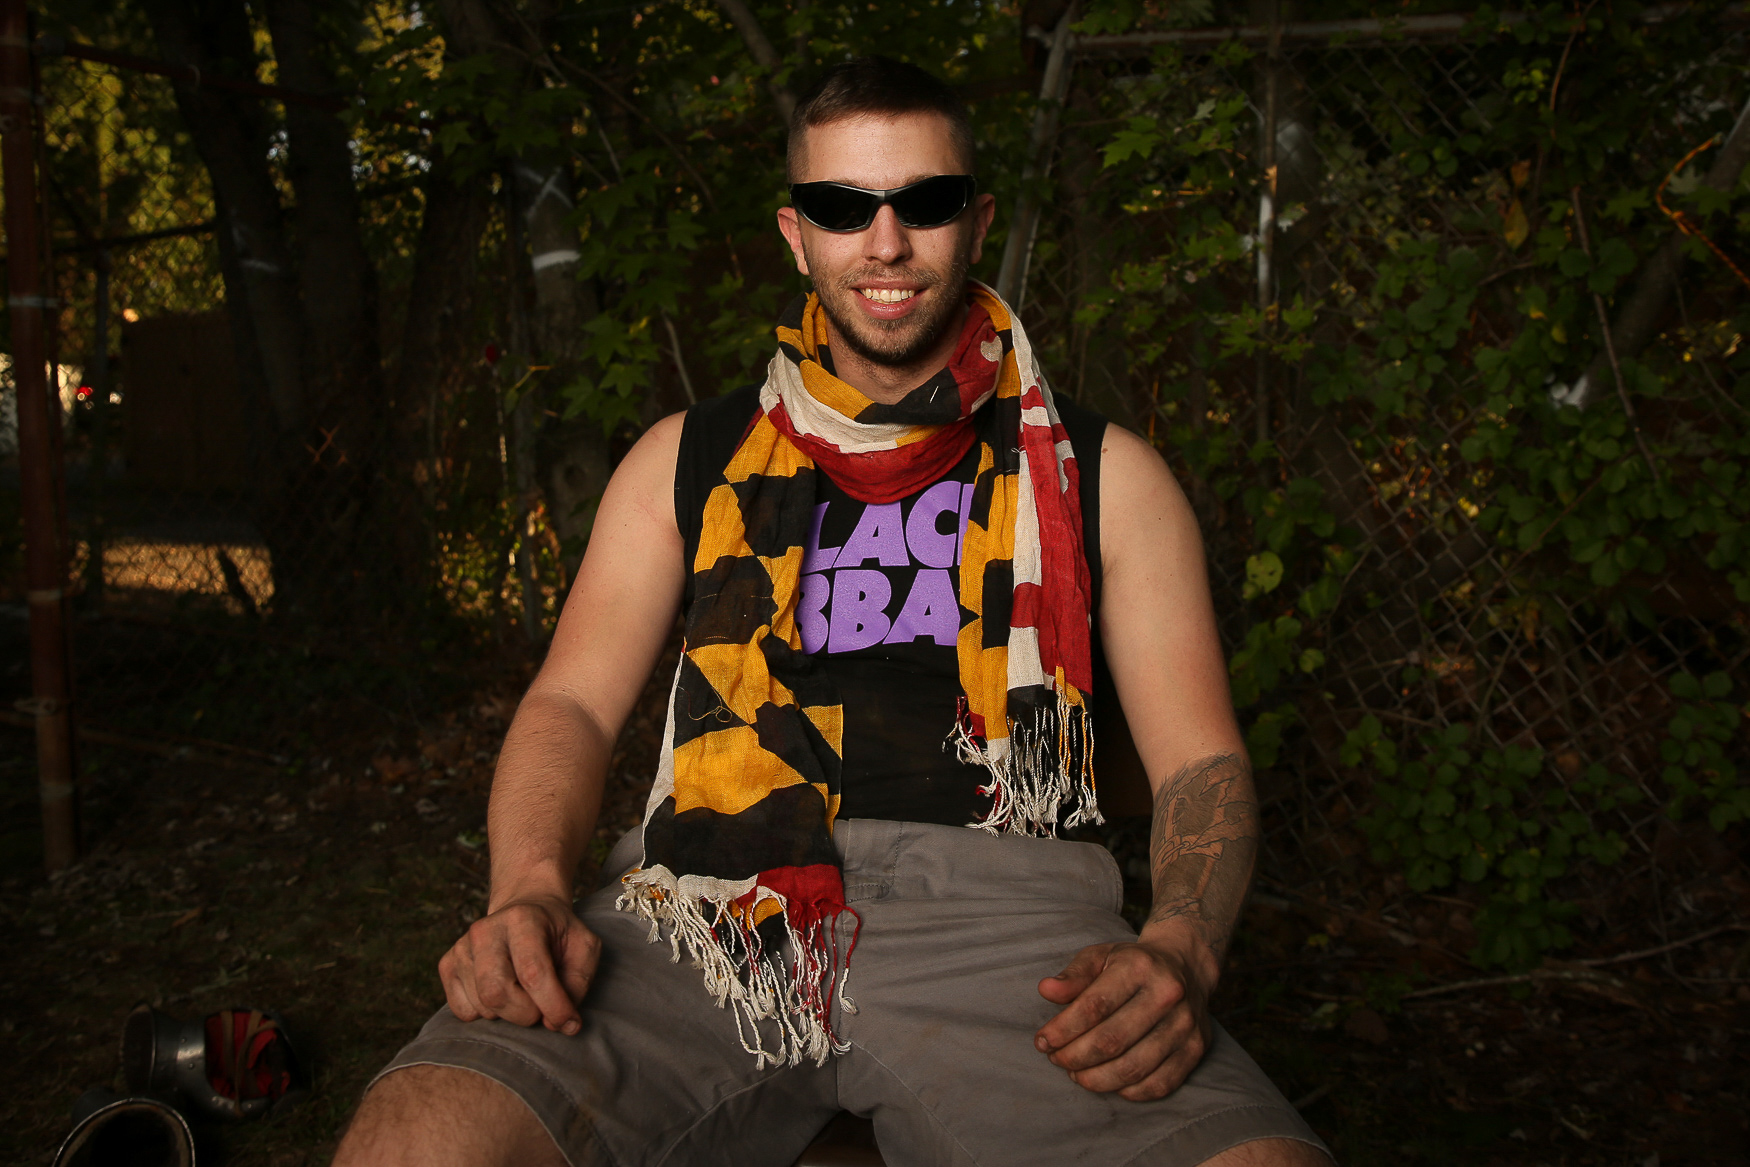 Ben Sugarman is a member of the Baltimore Huns. For him, the appeal is the adrenaline rush - &quot;nothing beats it,&quot; Ben said. &quot;I've also been a huge nerd my entire life, so this seemed like the next step. I love to take things to the extreme.&quot;{&amp;nbsp;}(Amanda Andrade-Rhoades/DC Refined)<p></p><p></p>